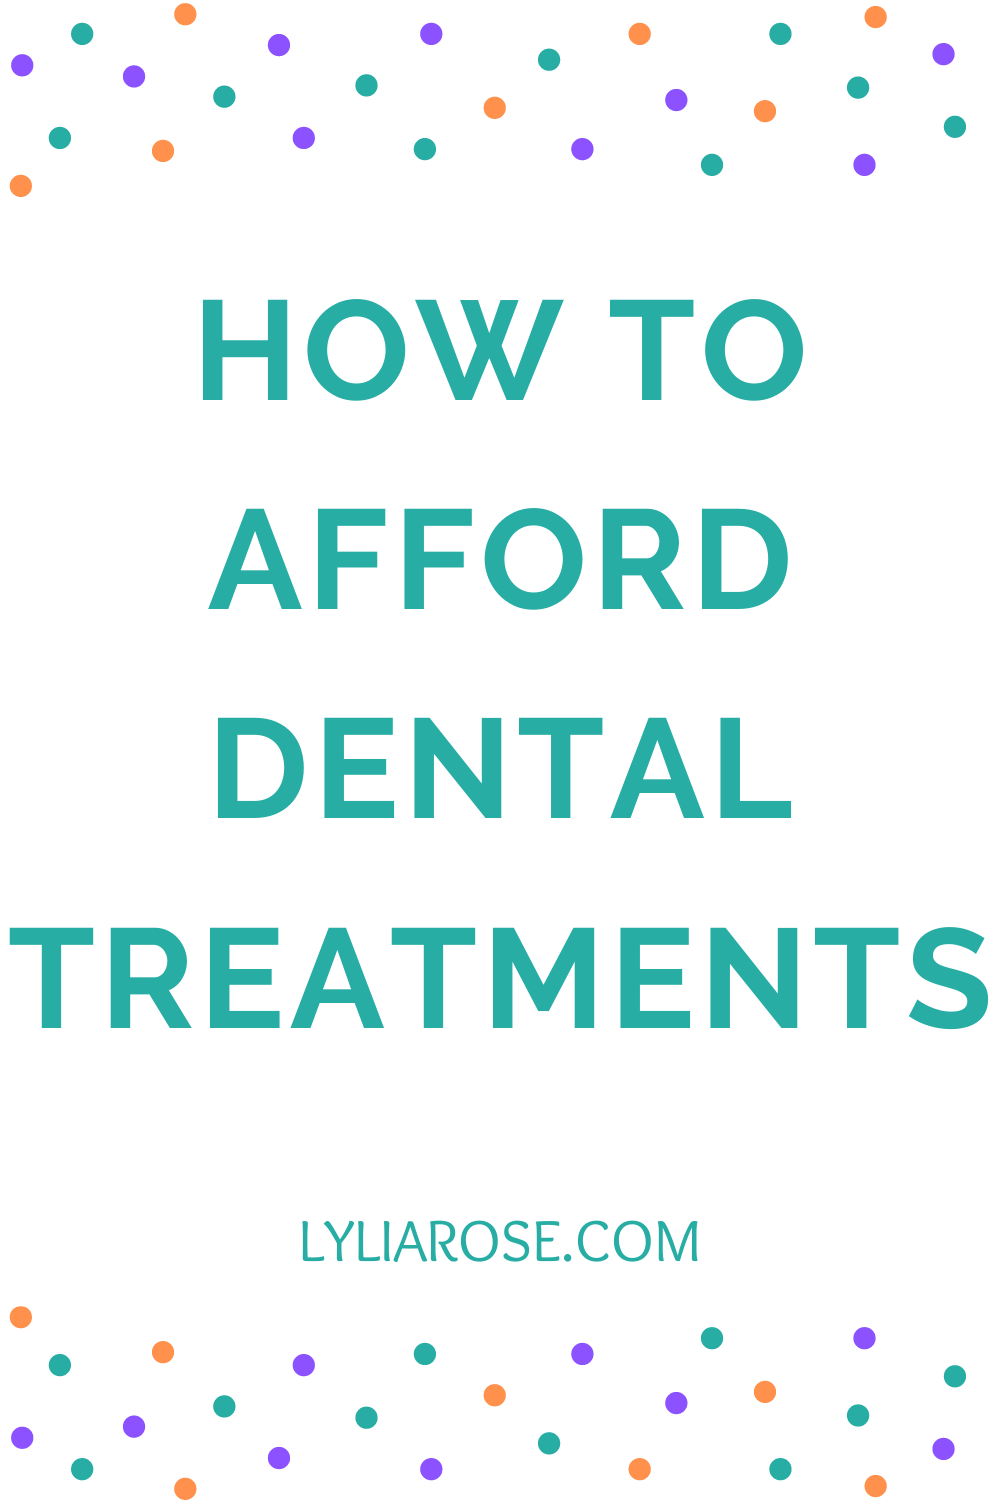 How to afford dental treatments (1)